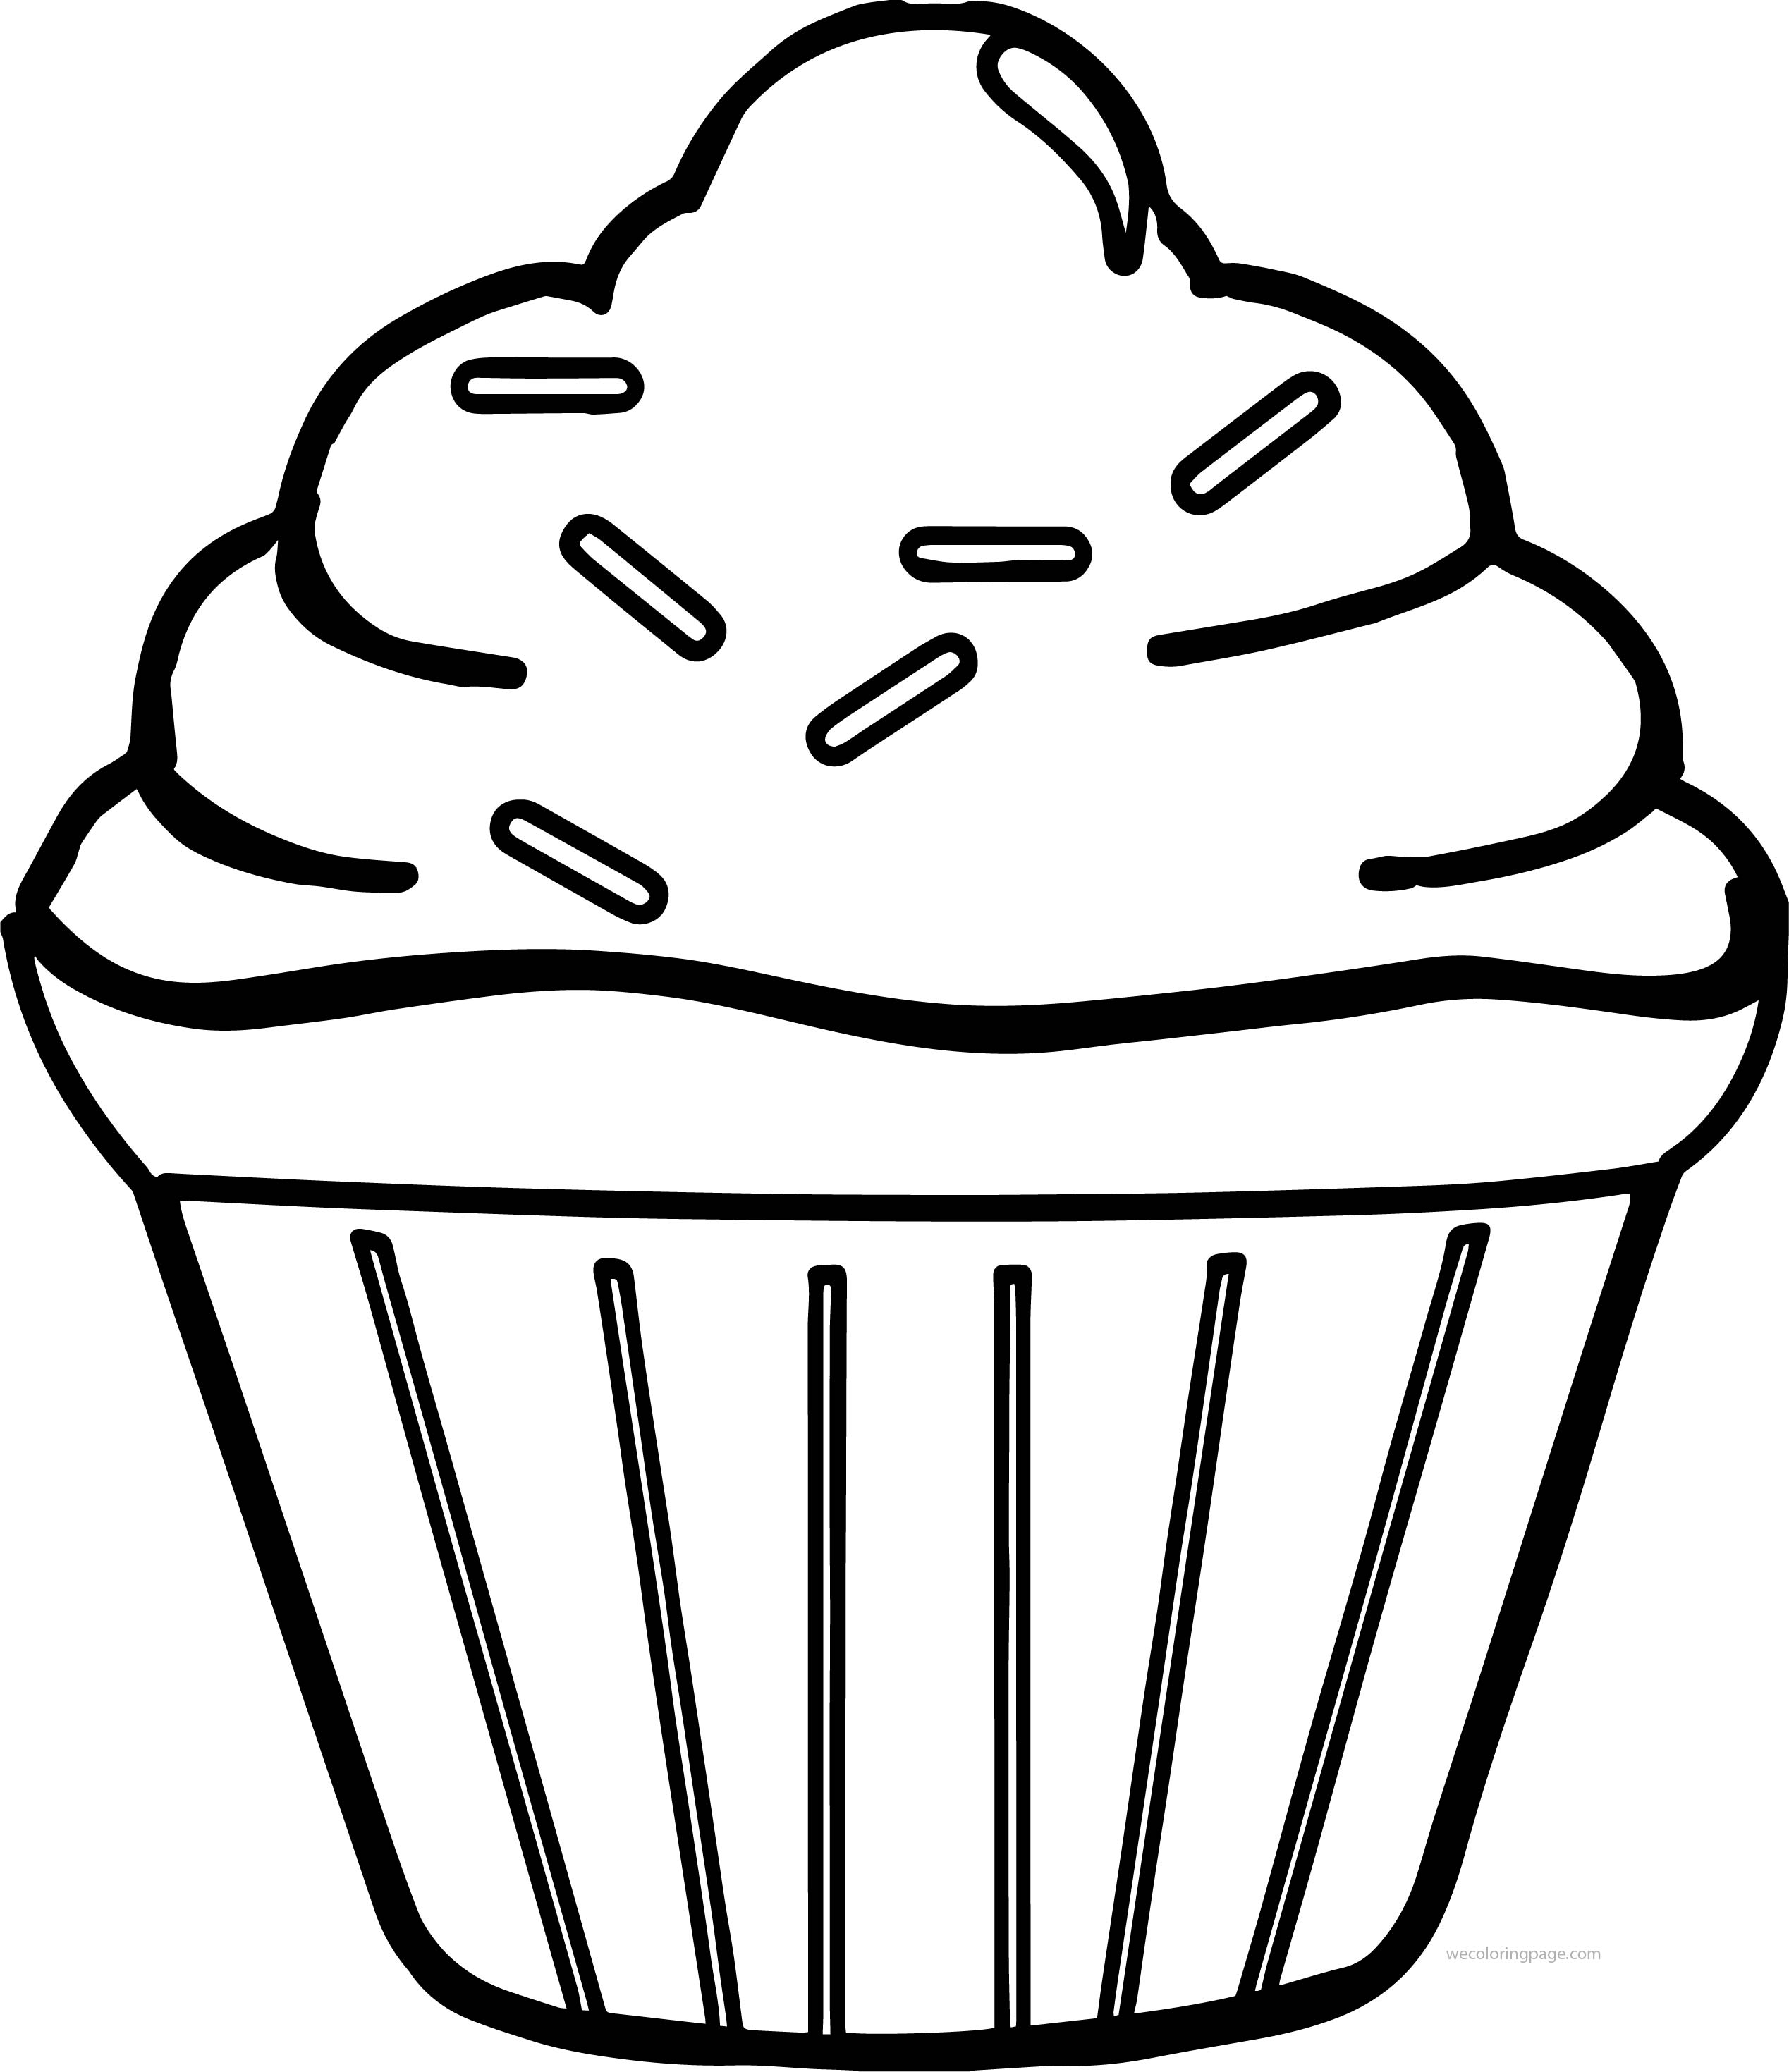 Simple Cupcake Coloring Page